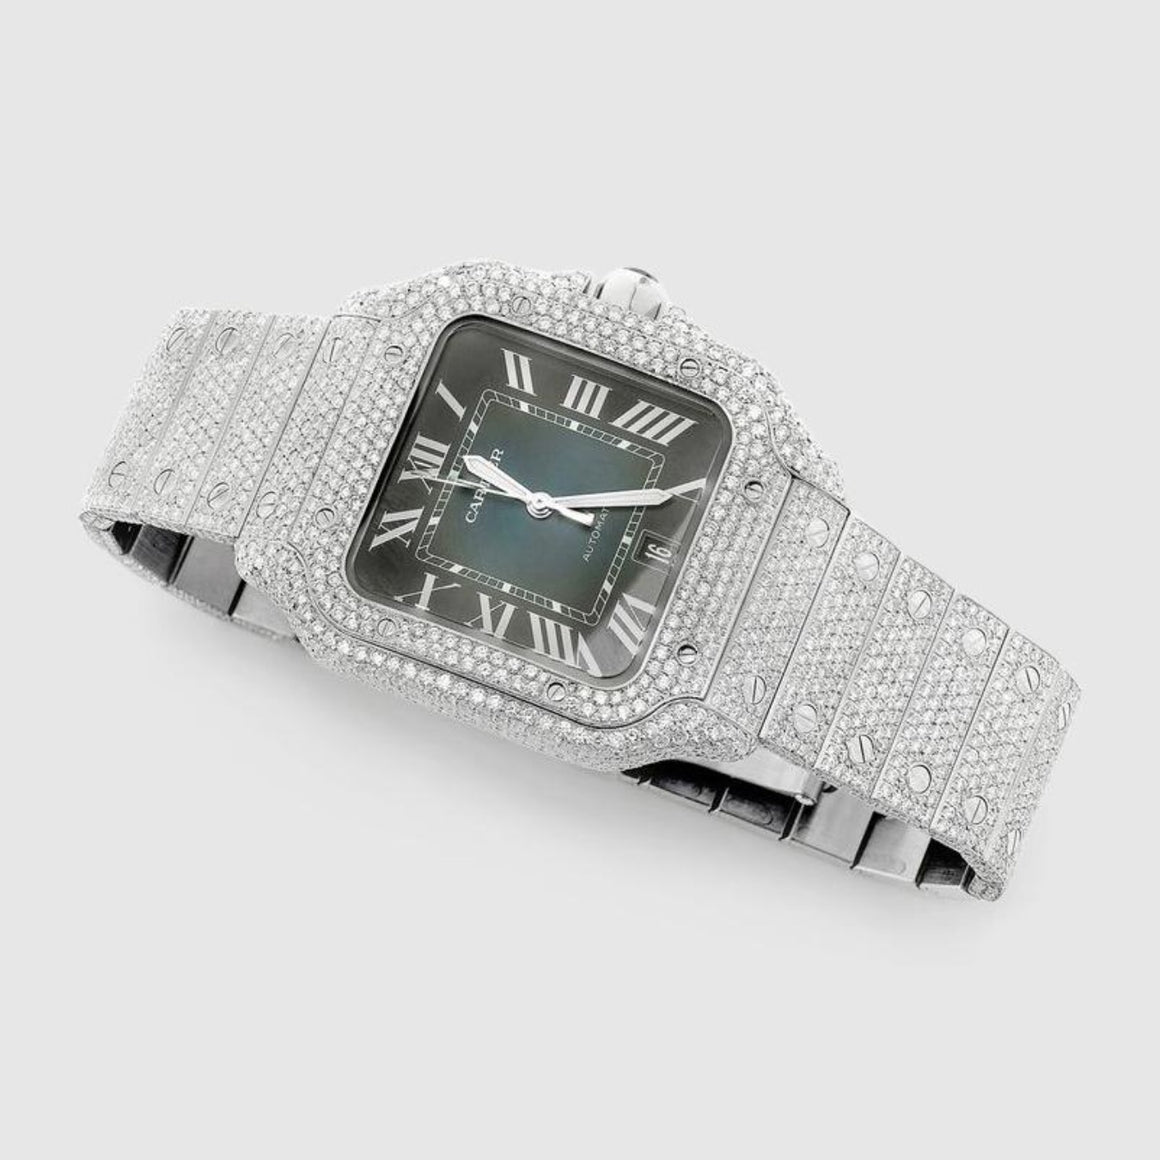 Iced Out Santos de Cartier 40mm Stainless Steel Blue Dial Watch